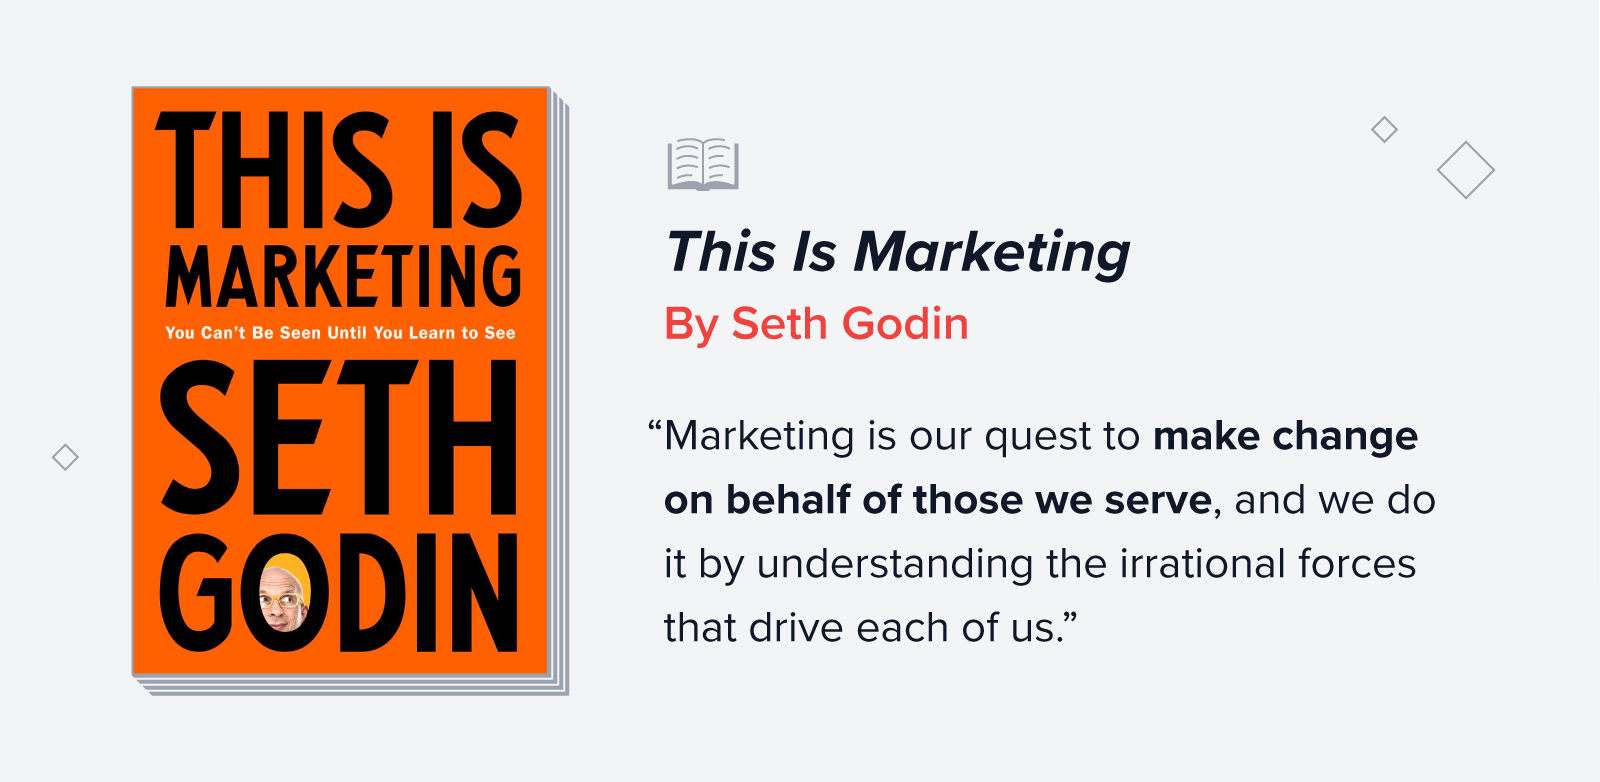 This is Marketing quote